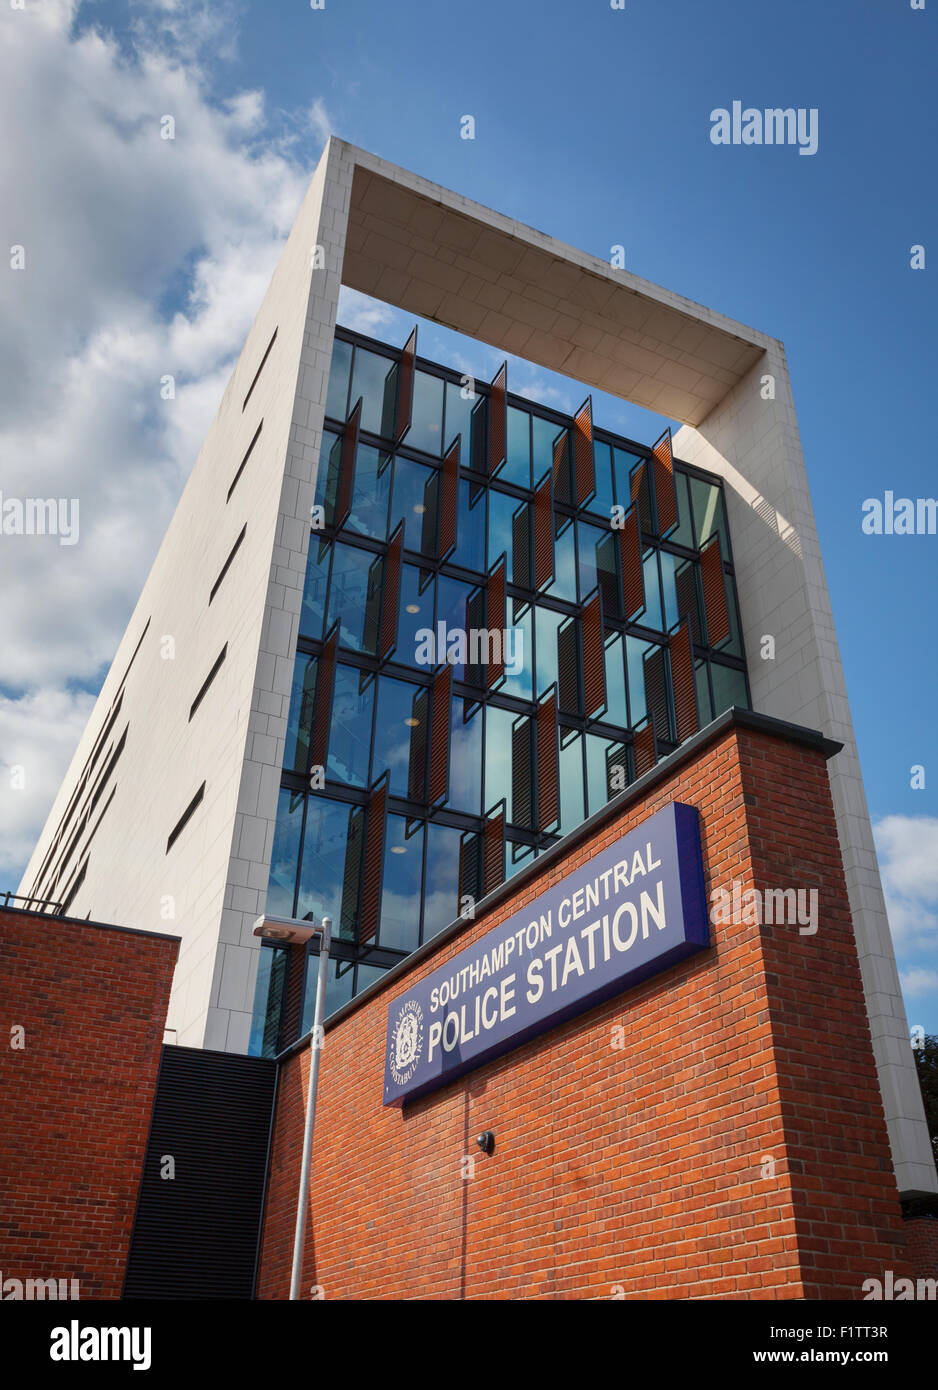 Southampton Central Police Station, Southampton, Hampshire, UK - Stock Image